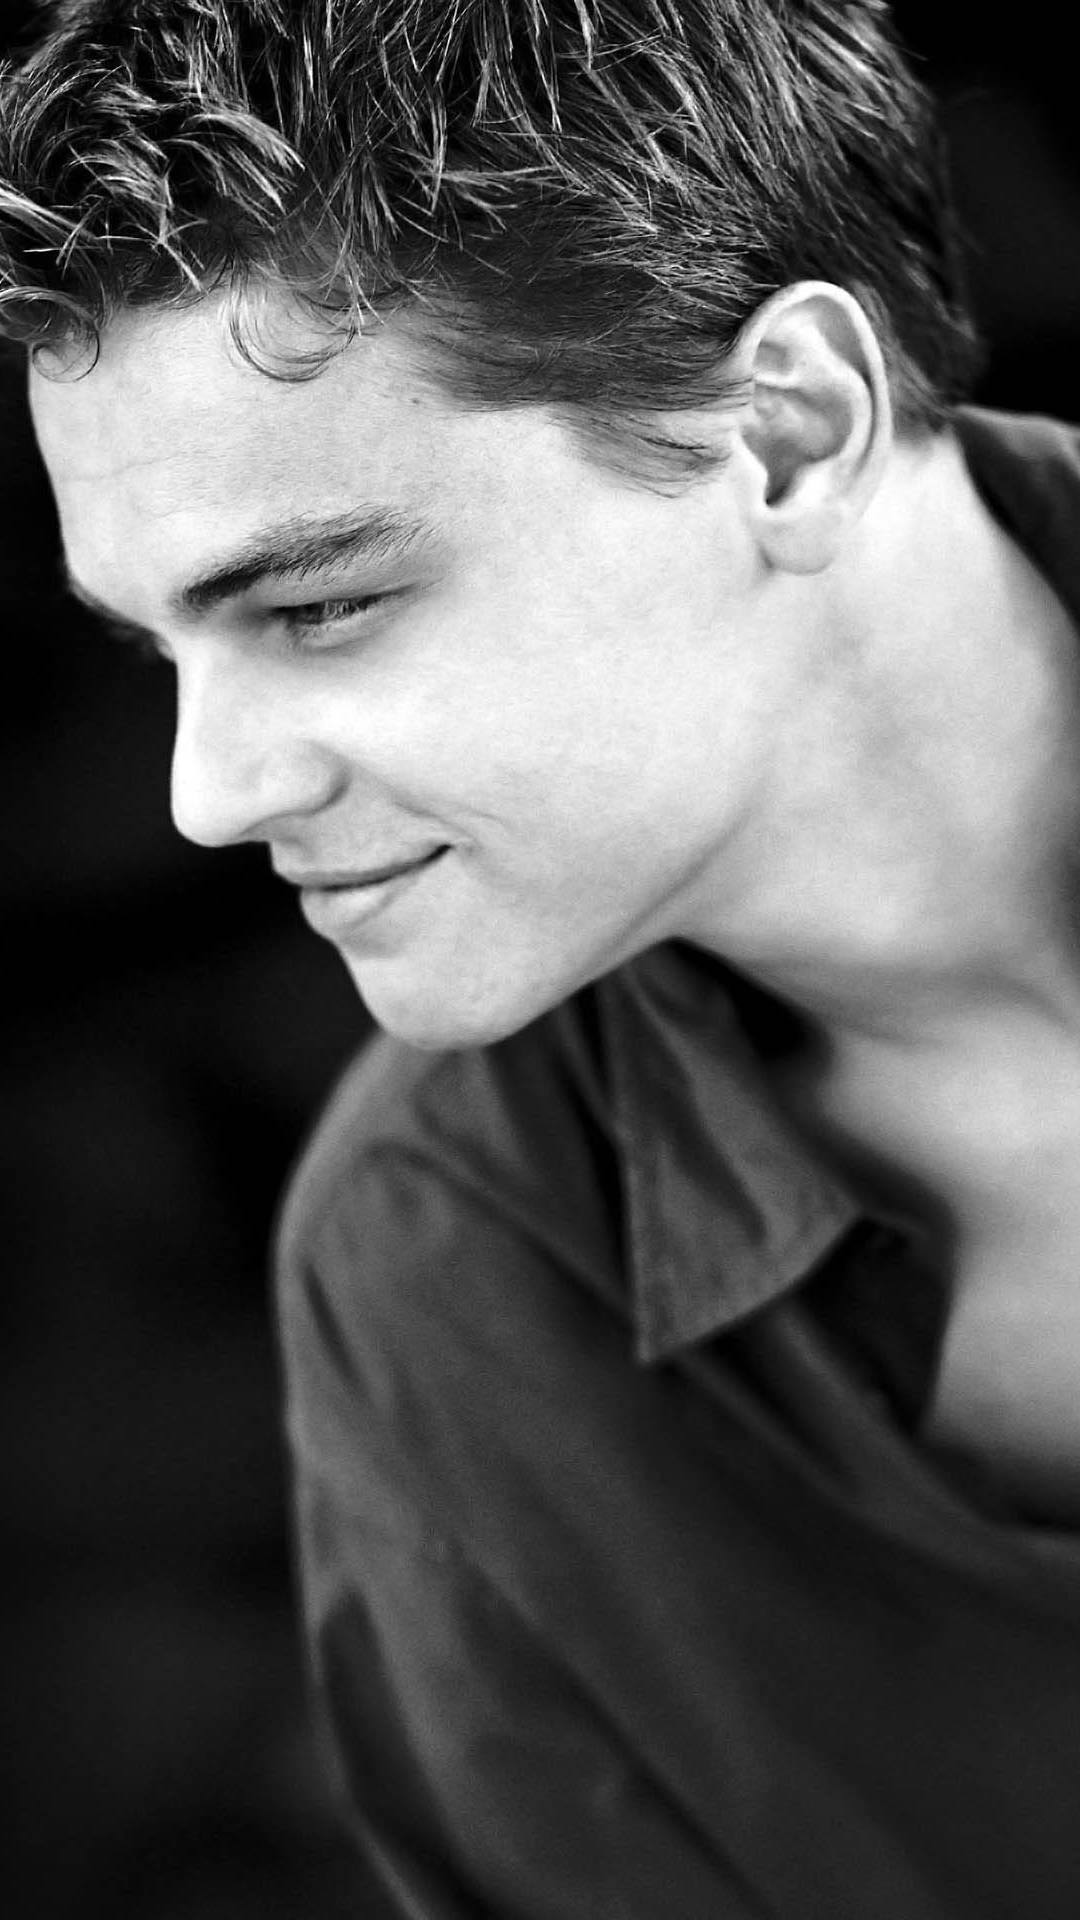 28 leonardo dicaprio wallpapers for iphone - apple lives